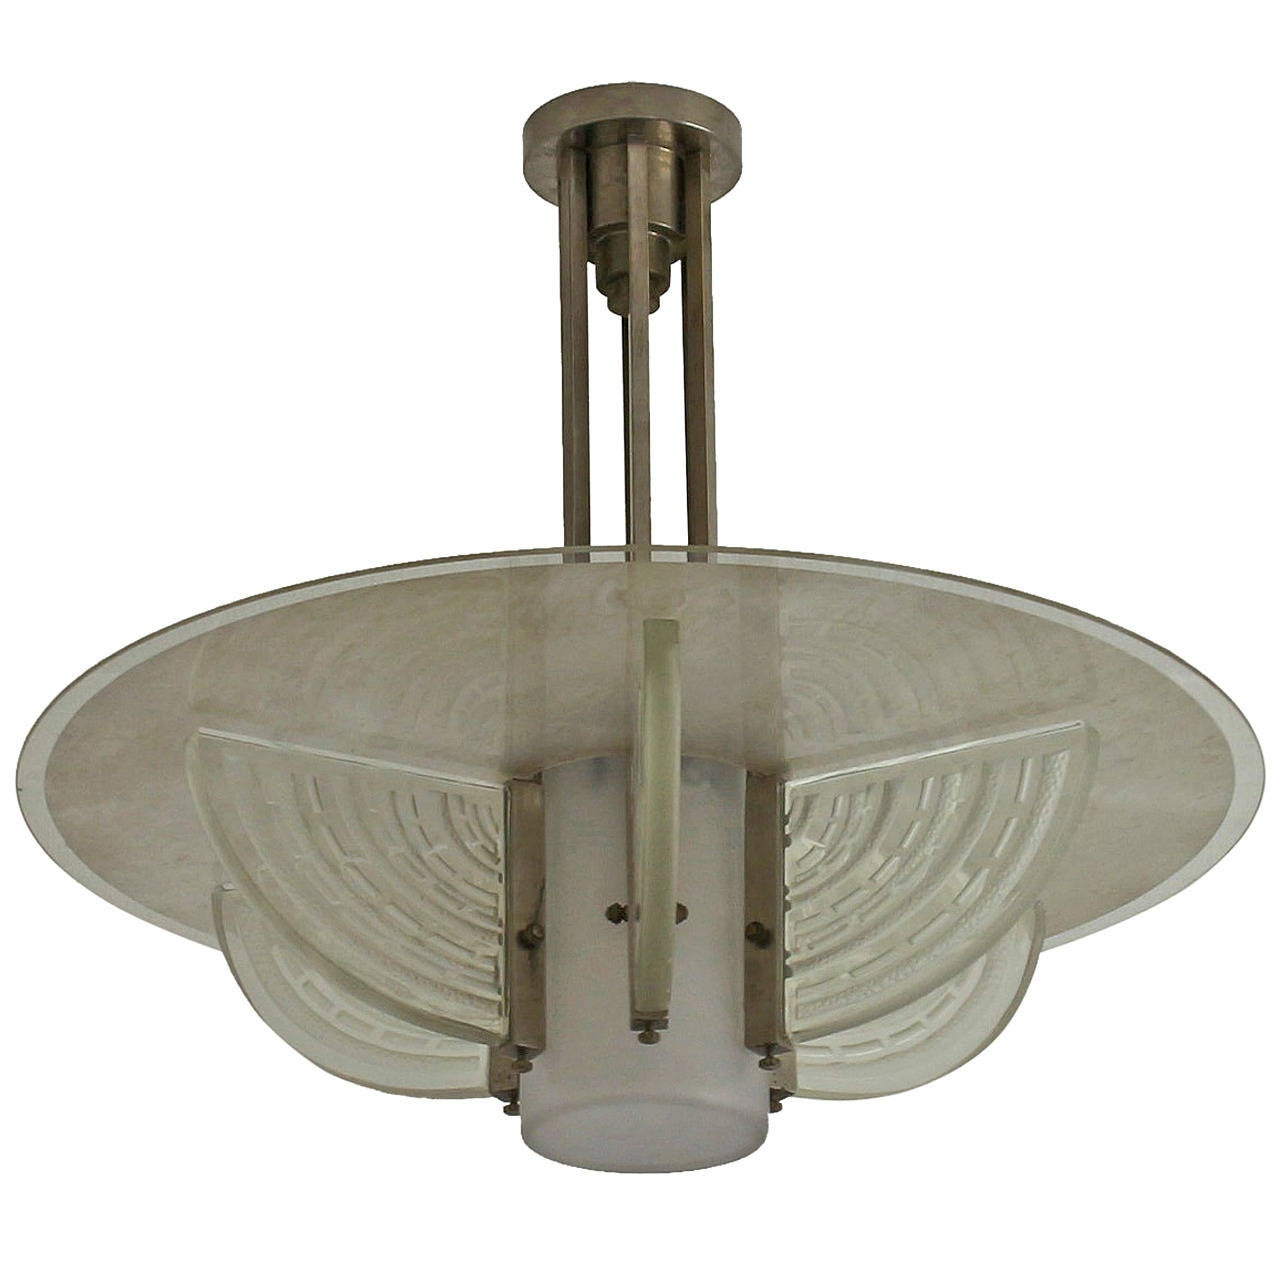 Fine french art deco chandelier by hettier et vincent for for Arts et decoration abonnement